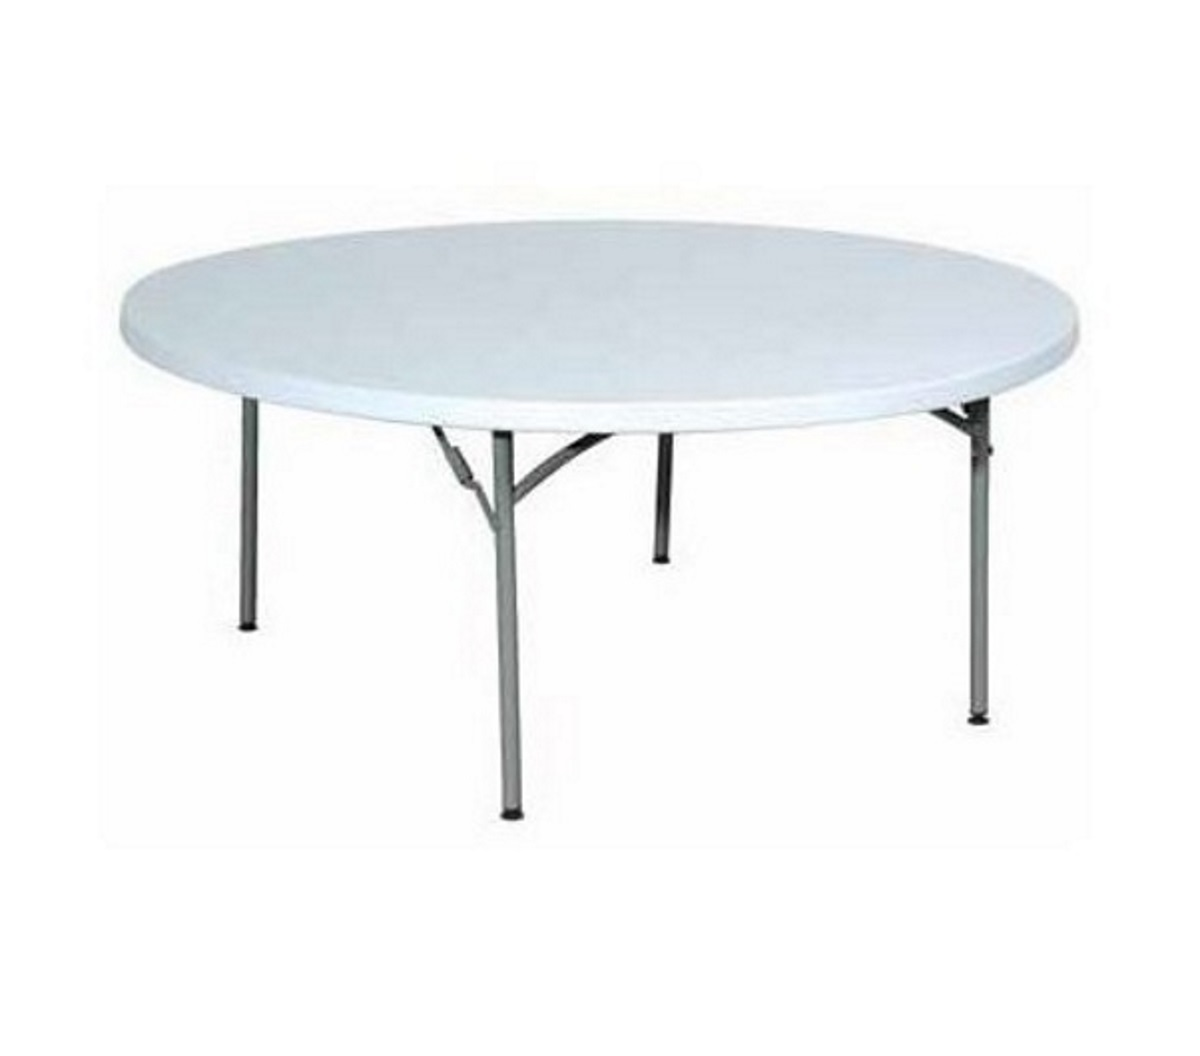 Table polypropylene ronde d178 1